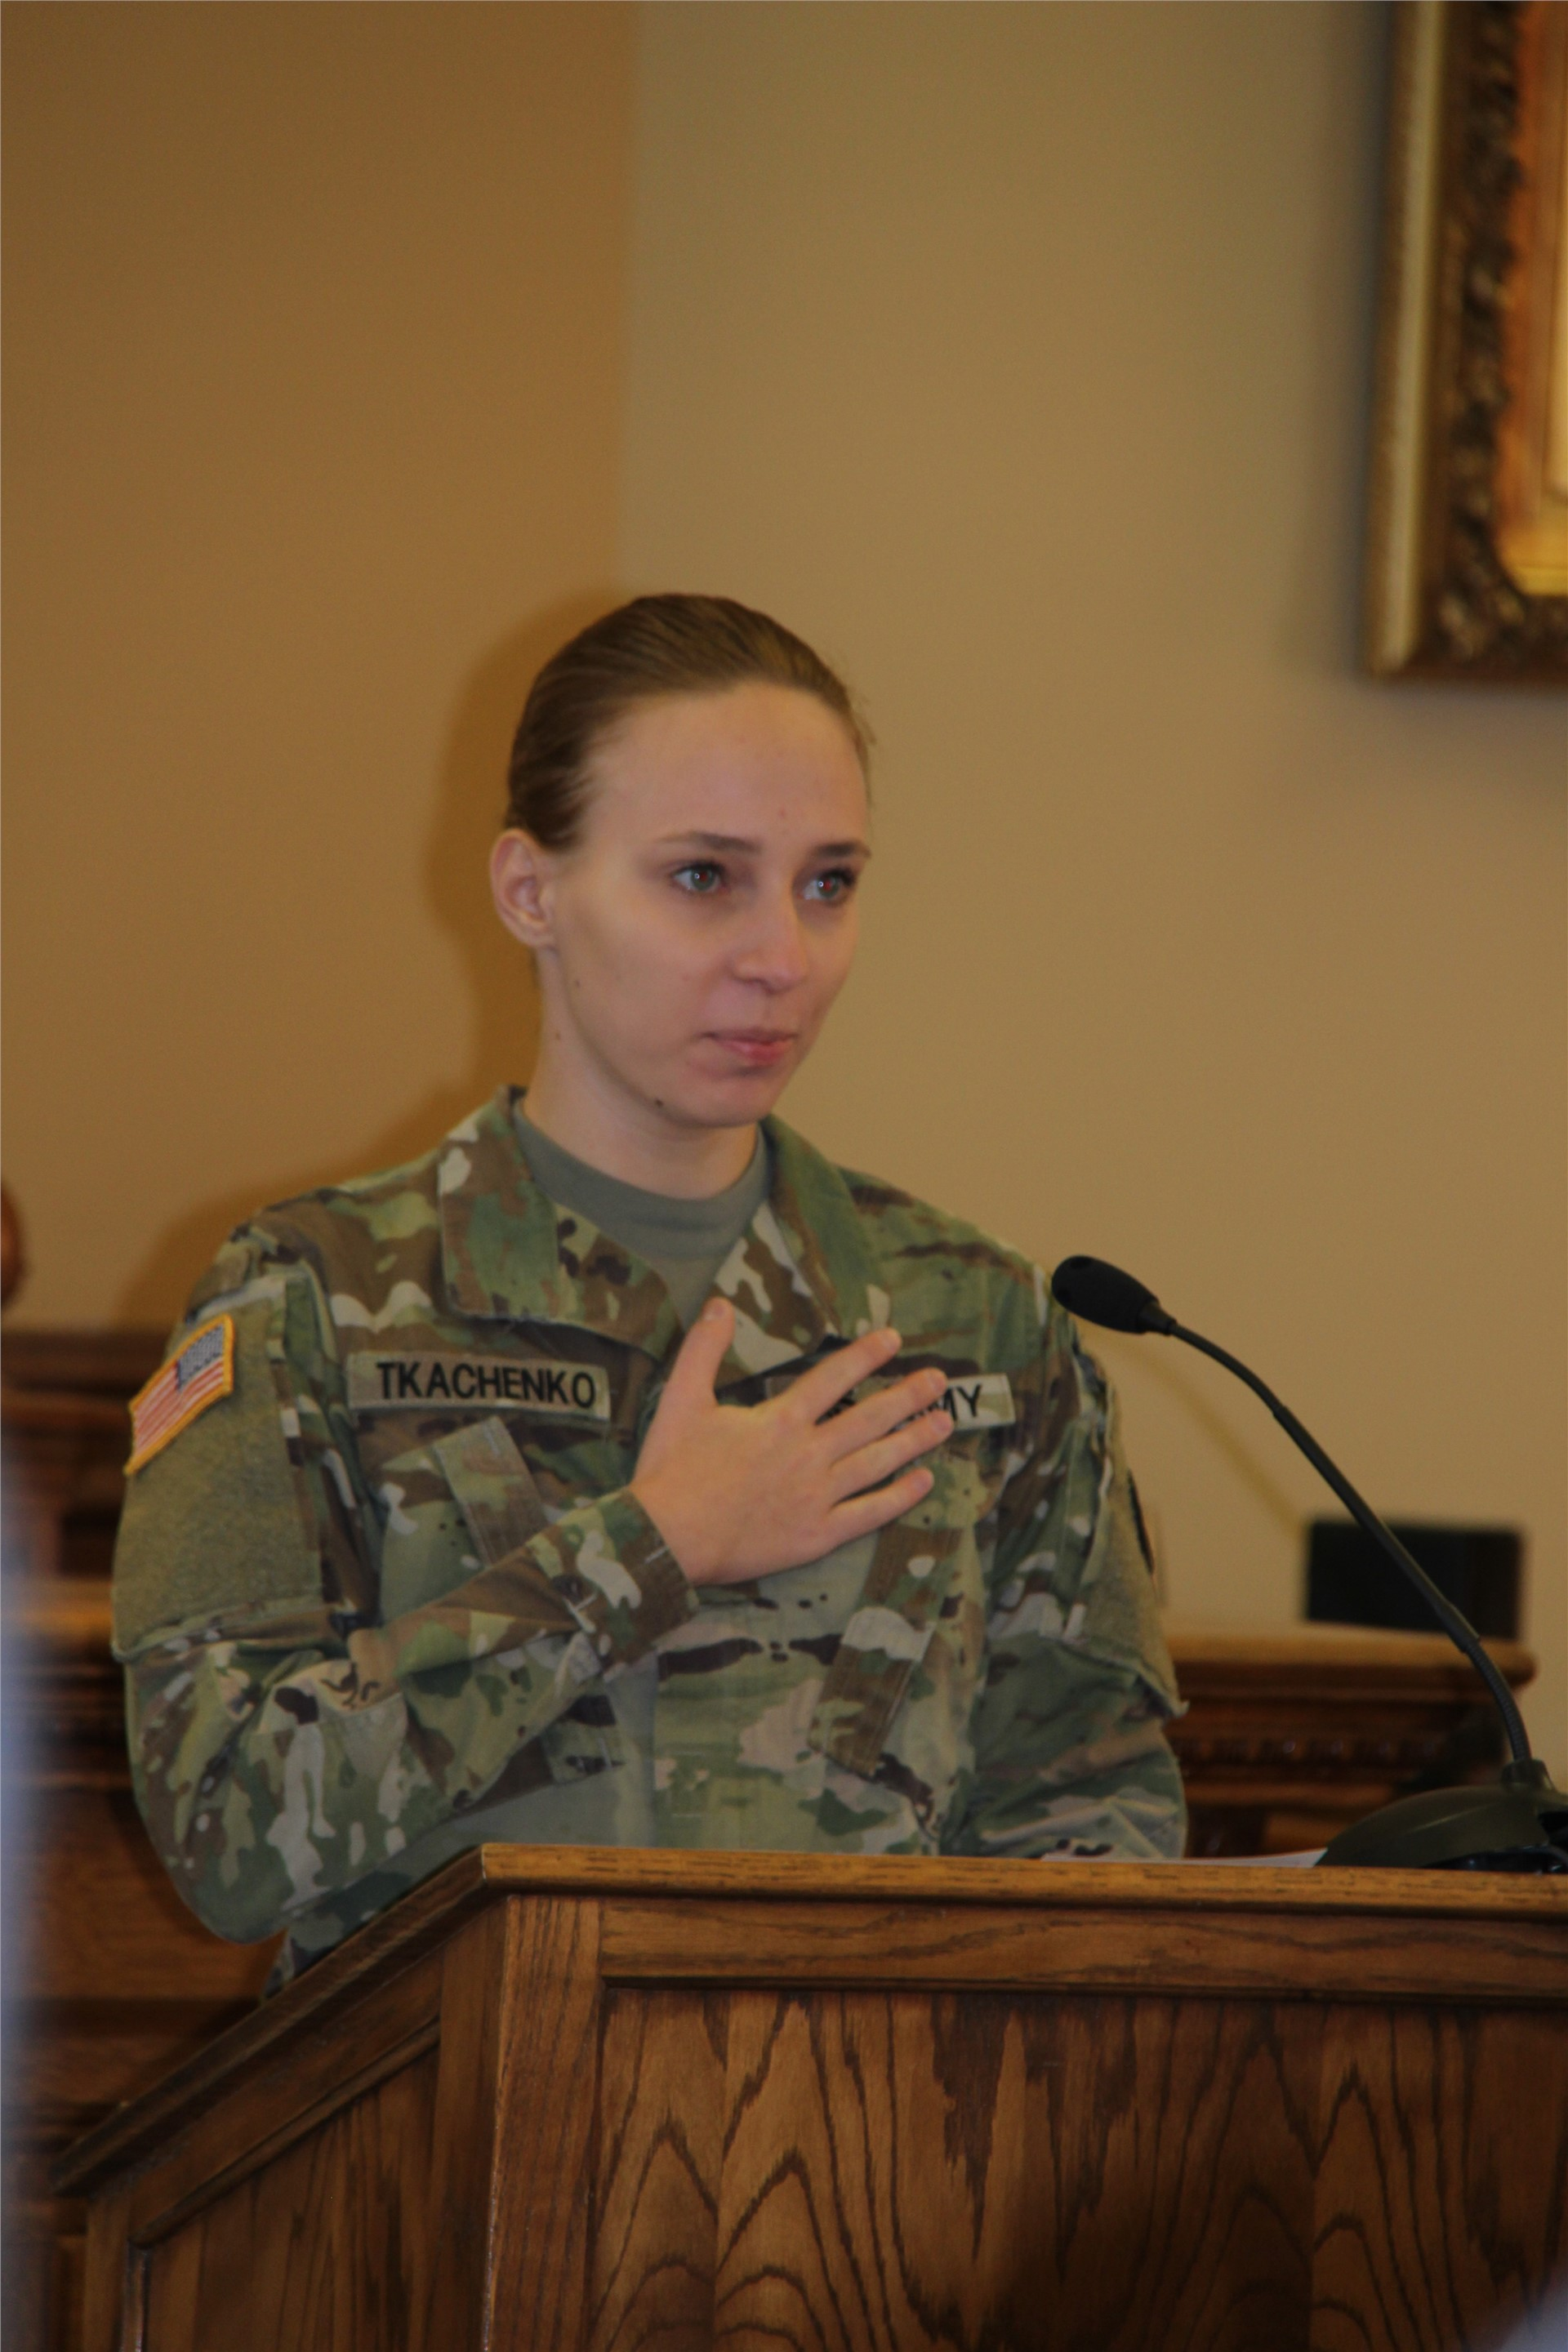 woman talking while wearing military uniform standing with hand on heart